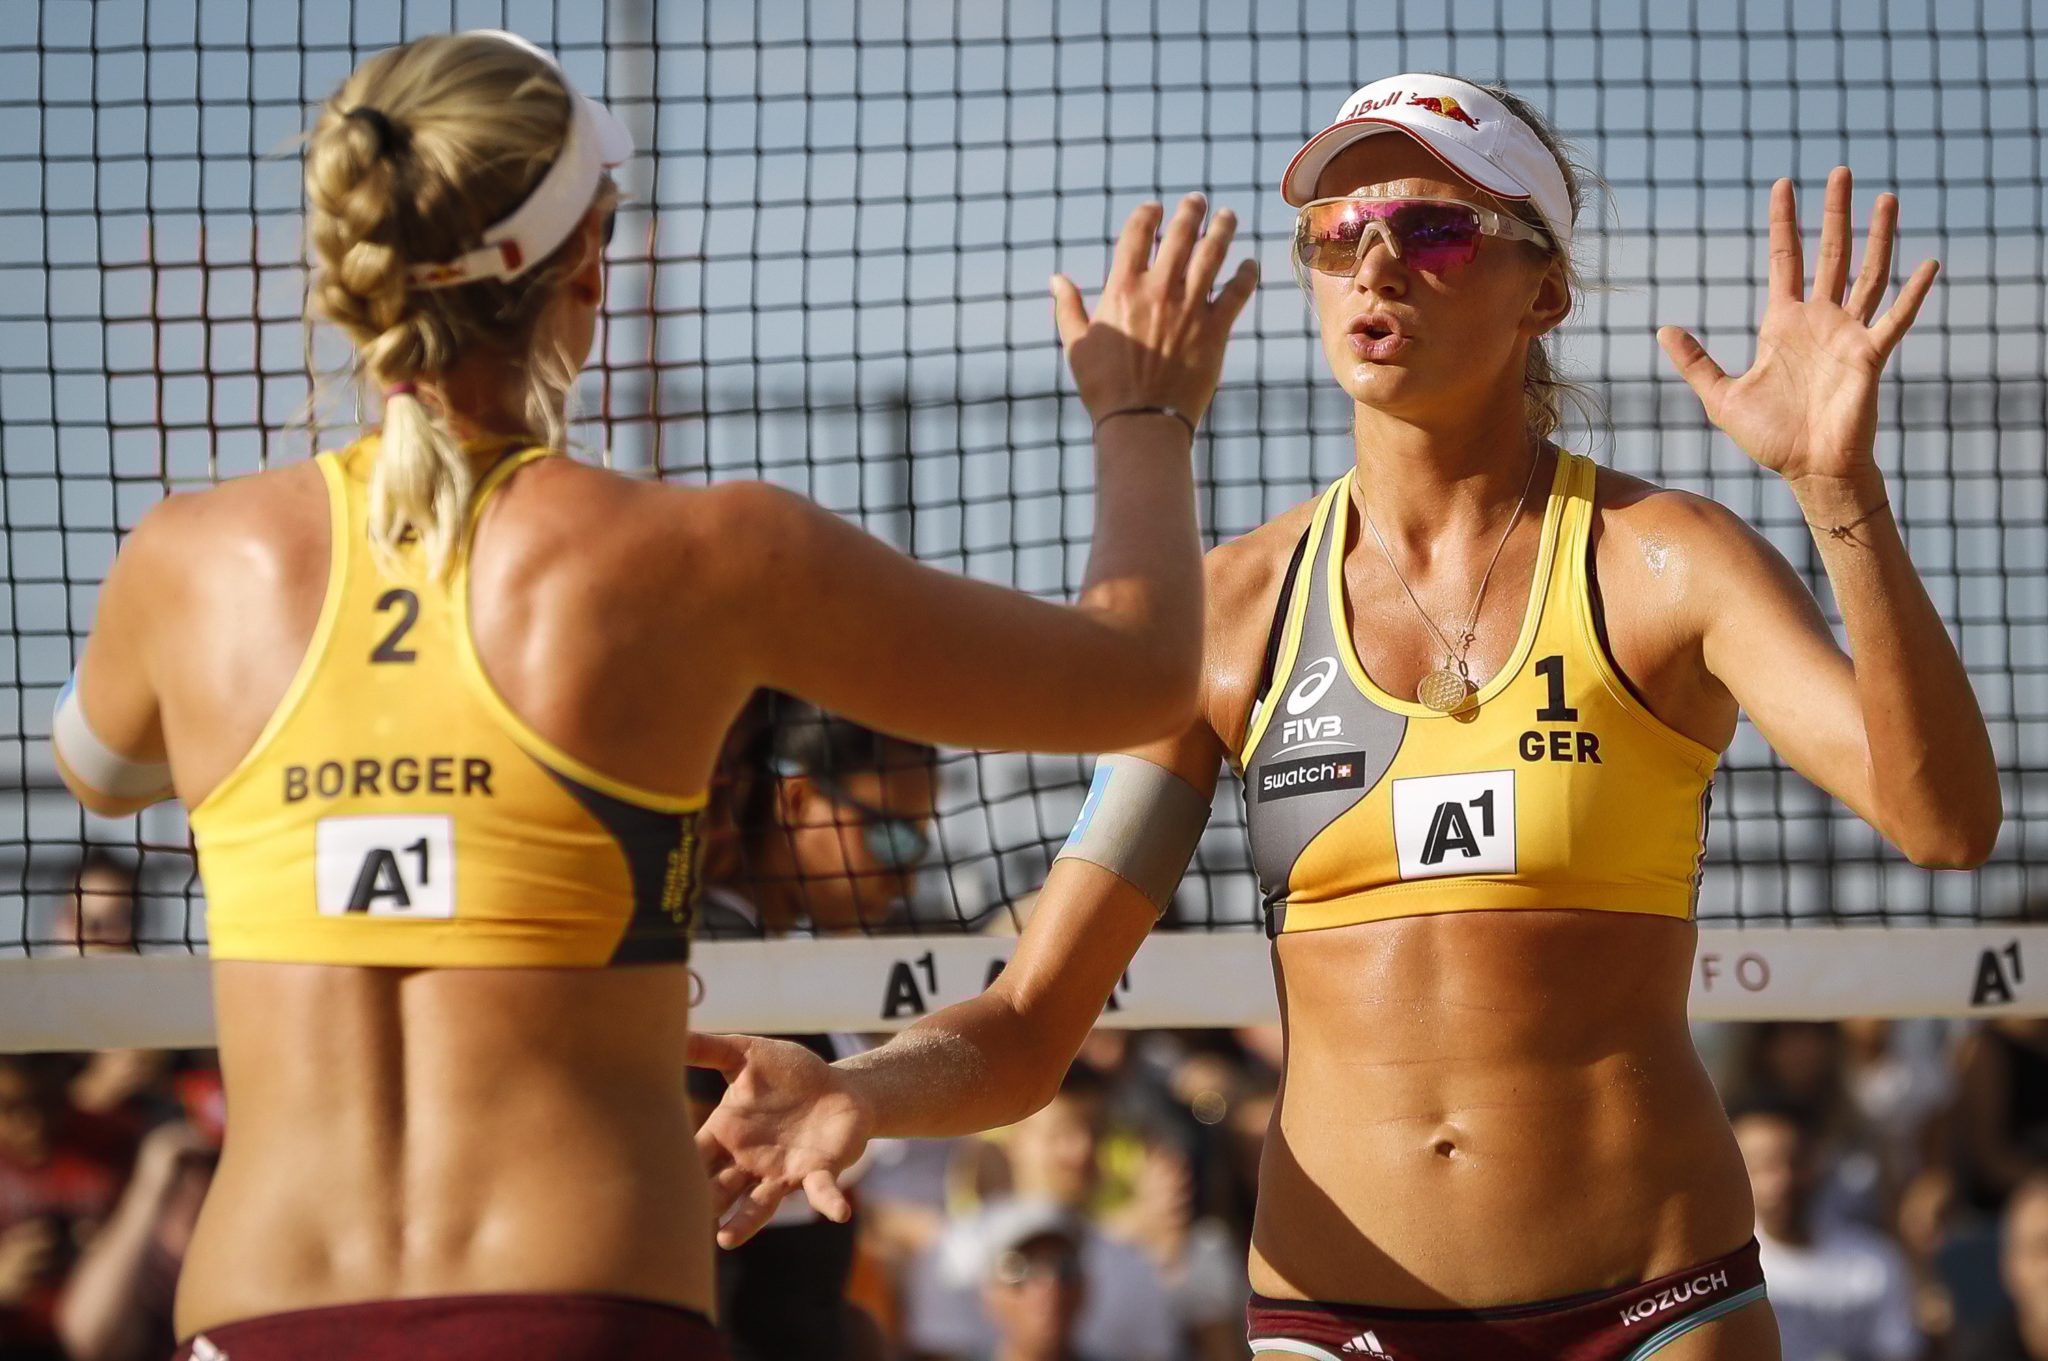 Germany S Maggie Kozuch Improving In Transition To Beach